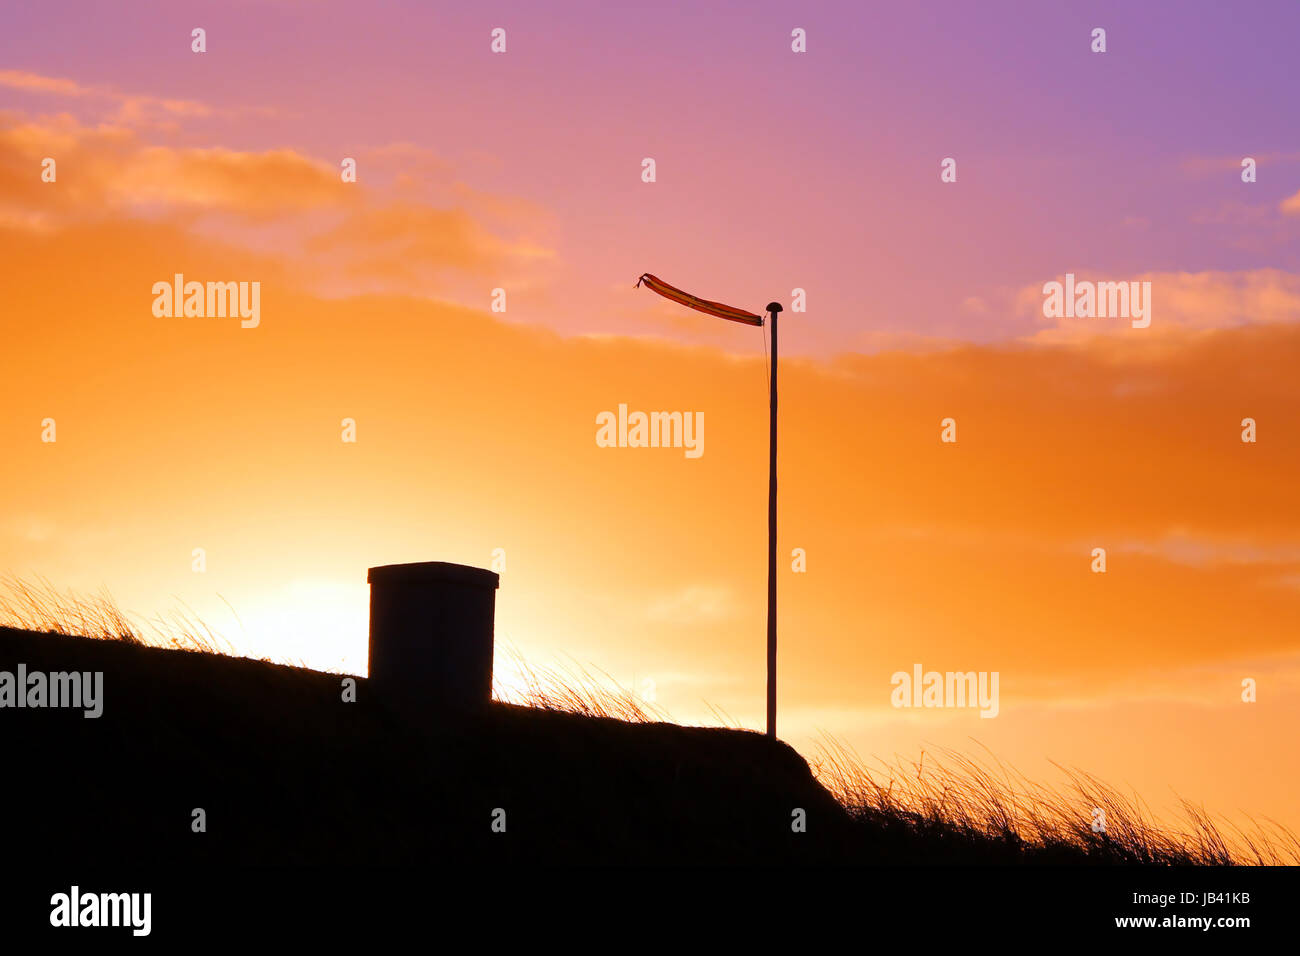 sunrise in denmark - Stock Image